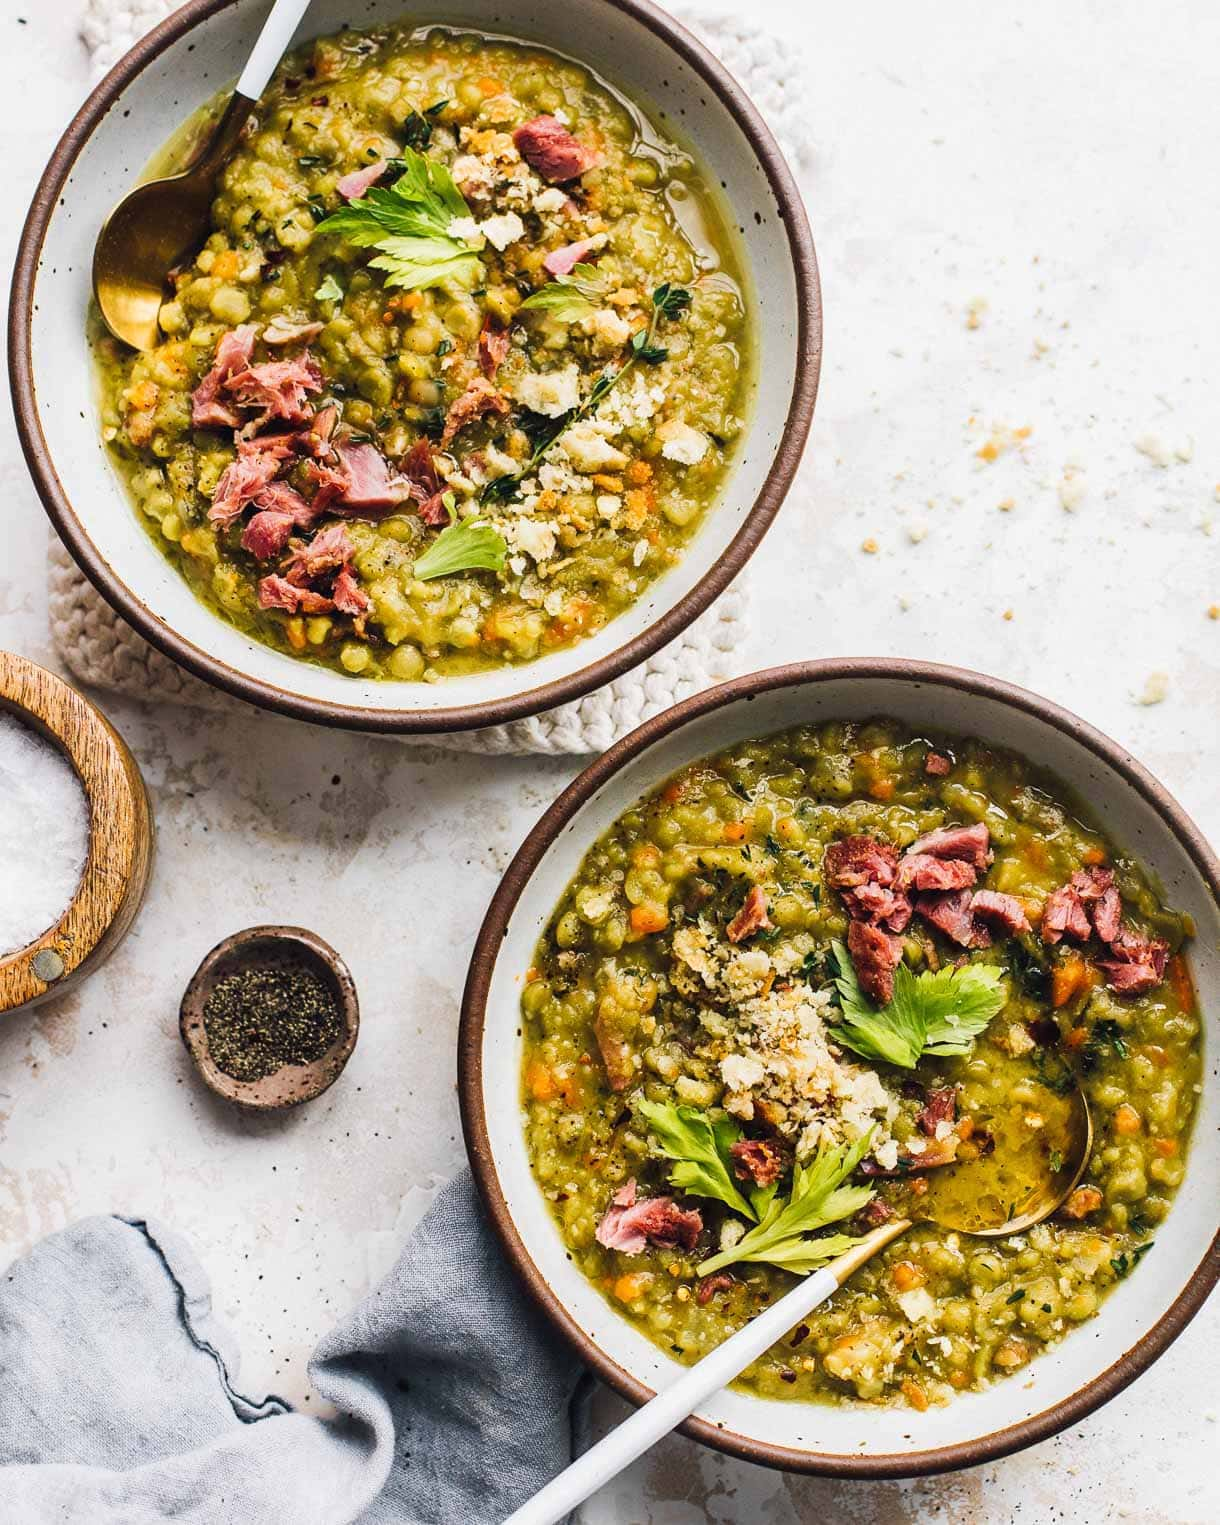 two bowls of split pea soup , with salt and pepper dishes to their left.